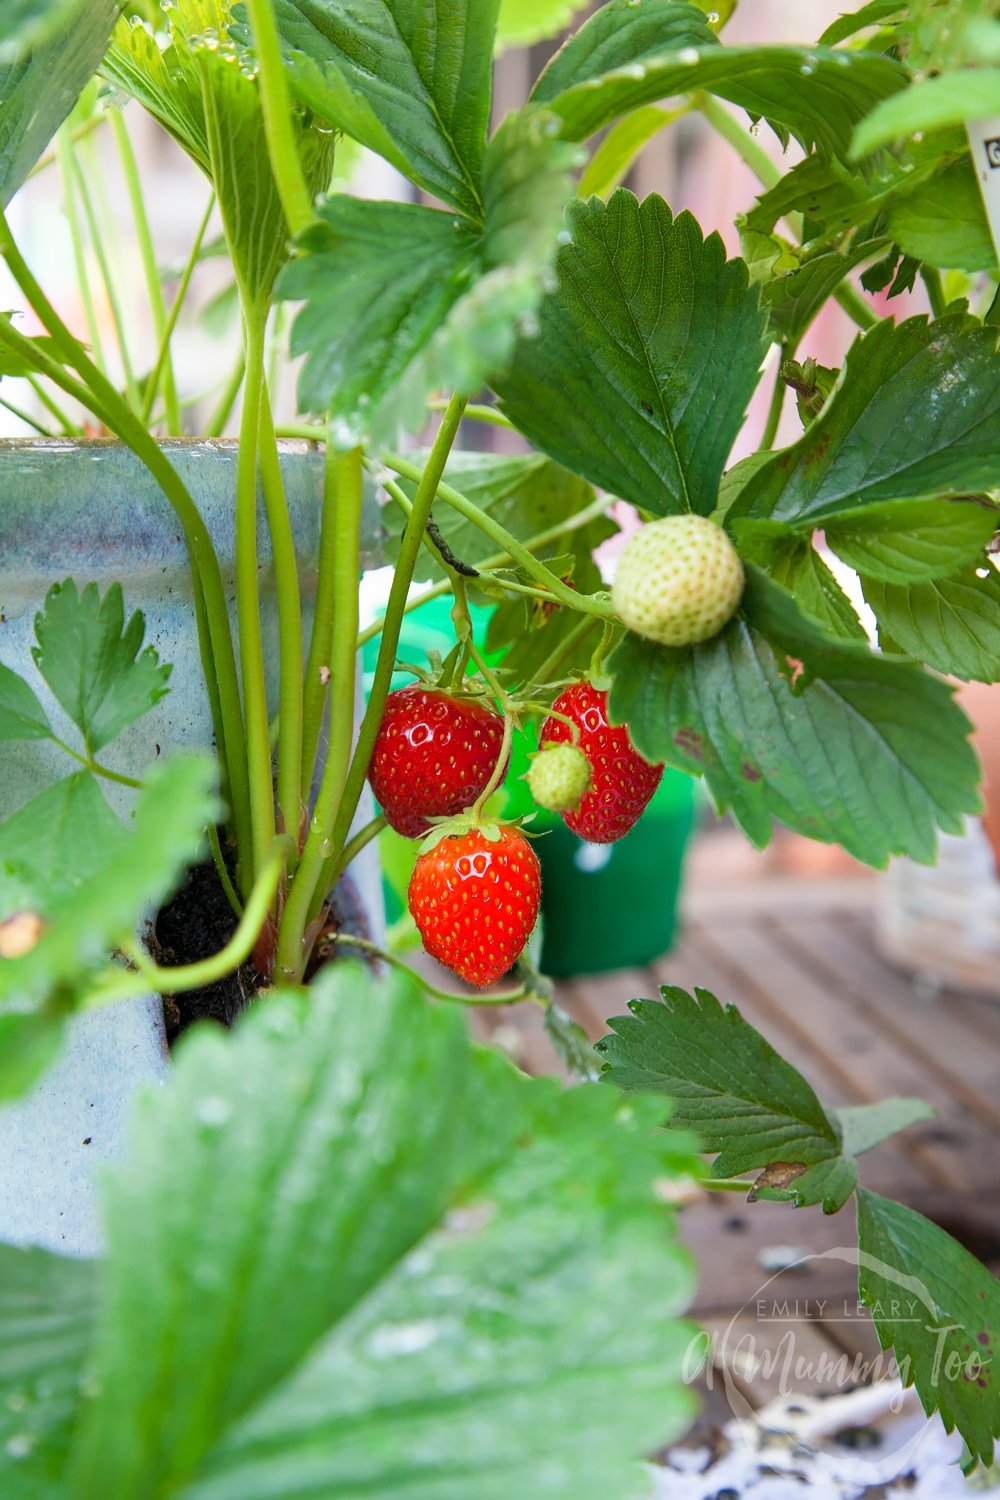 Growing fresh strawberries in our garden